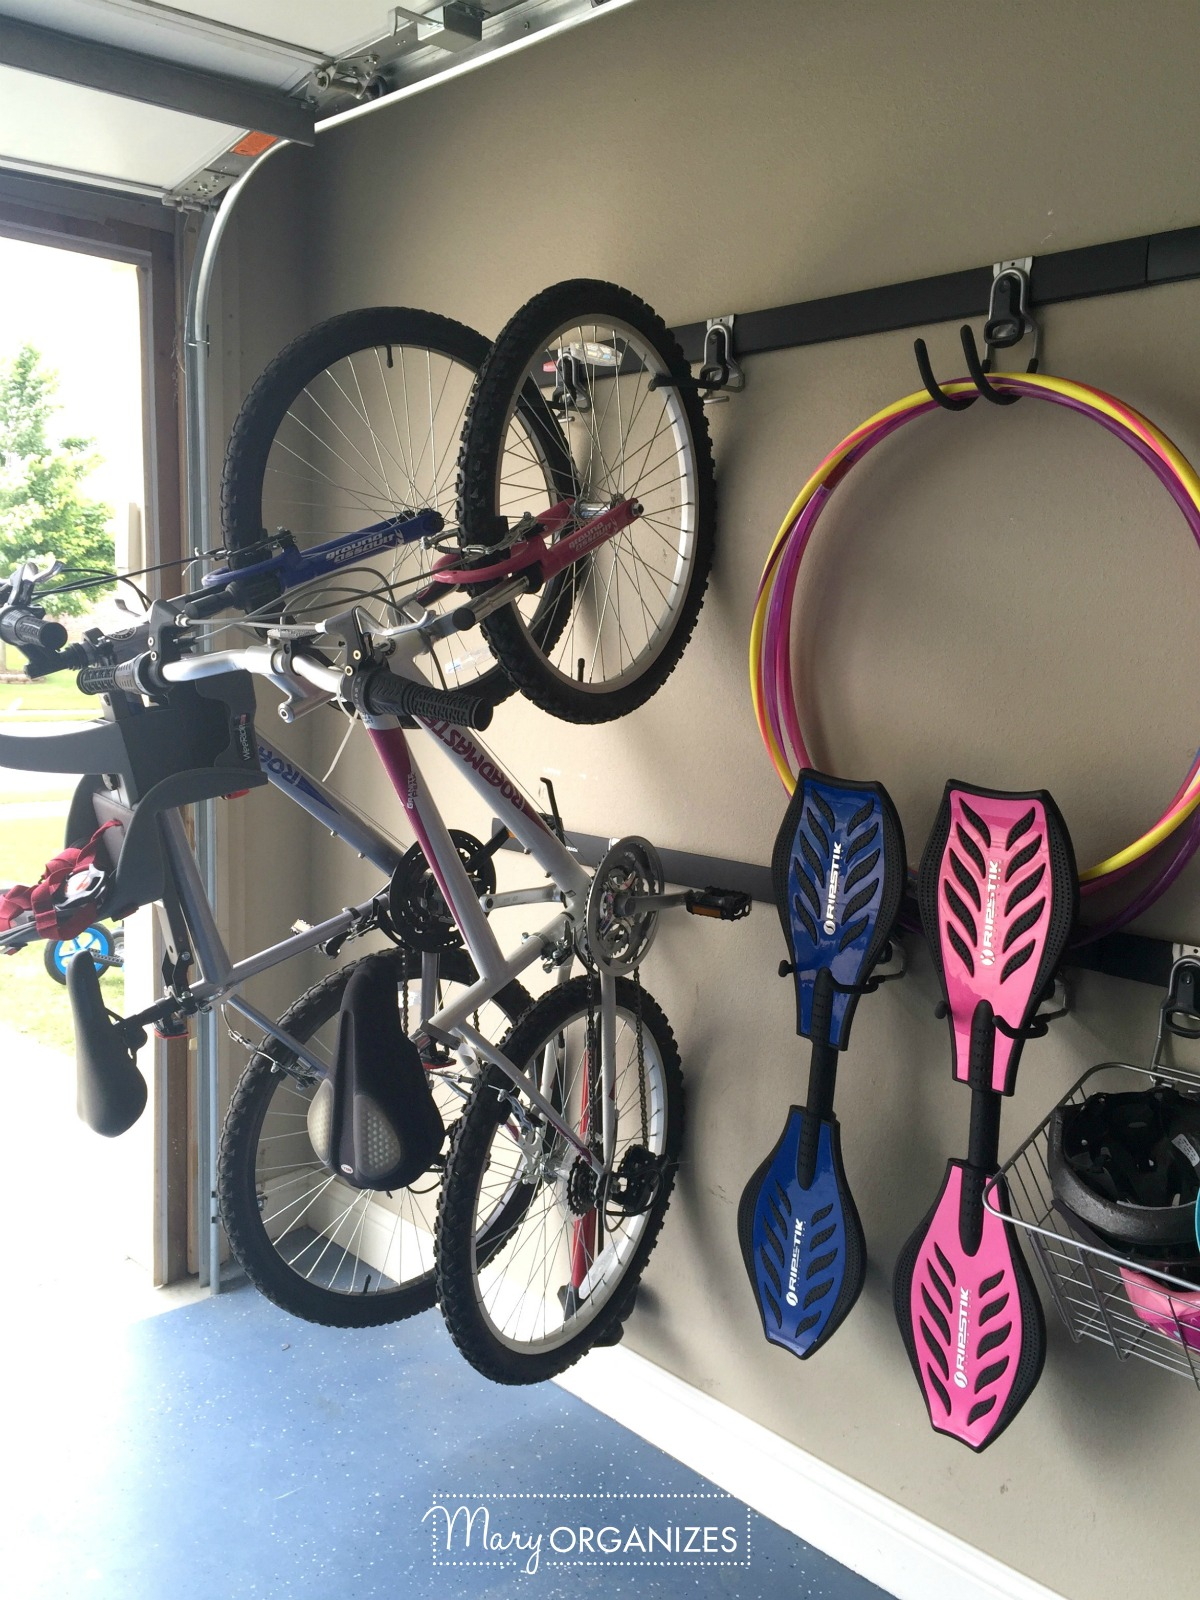 Garage Organizing - How to hang bikes scooters ripsticks balls and more -g1